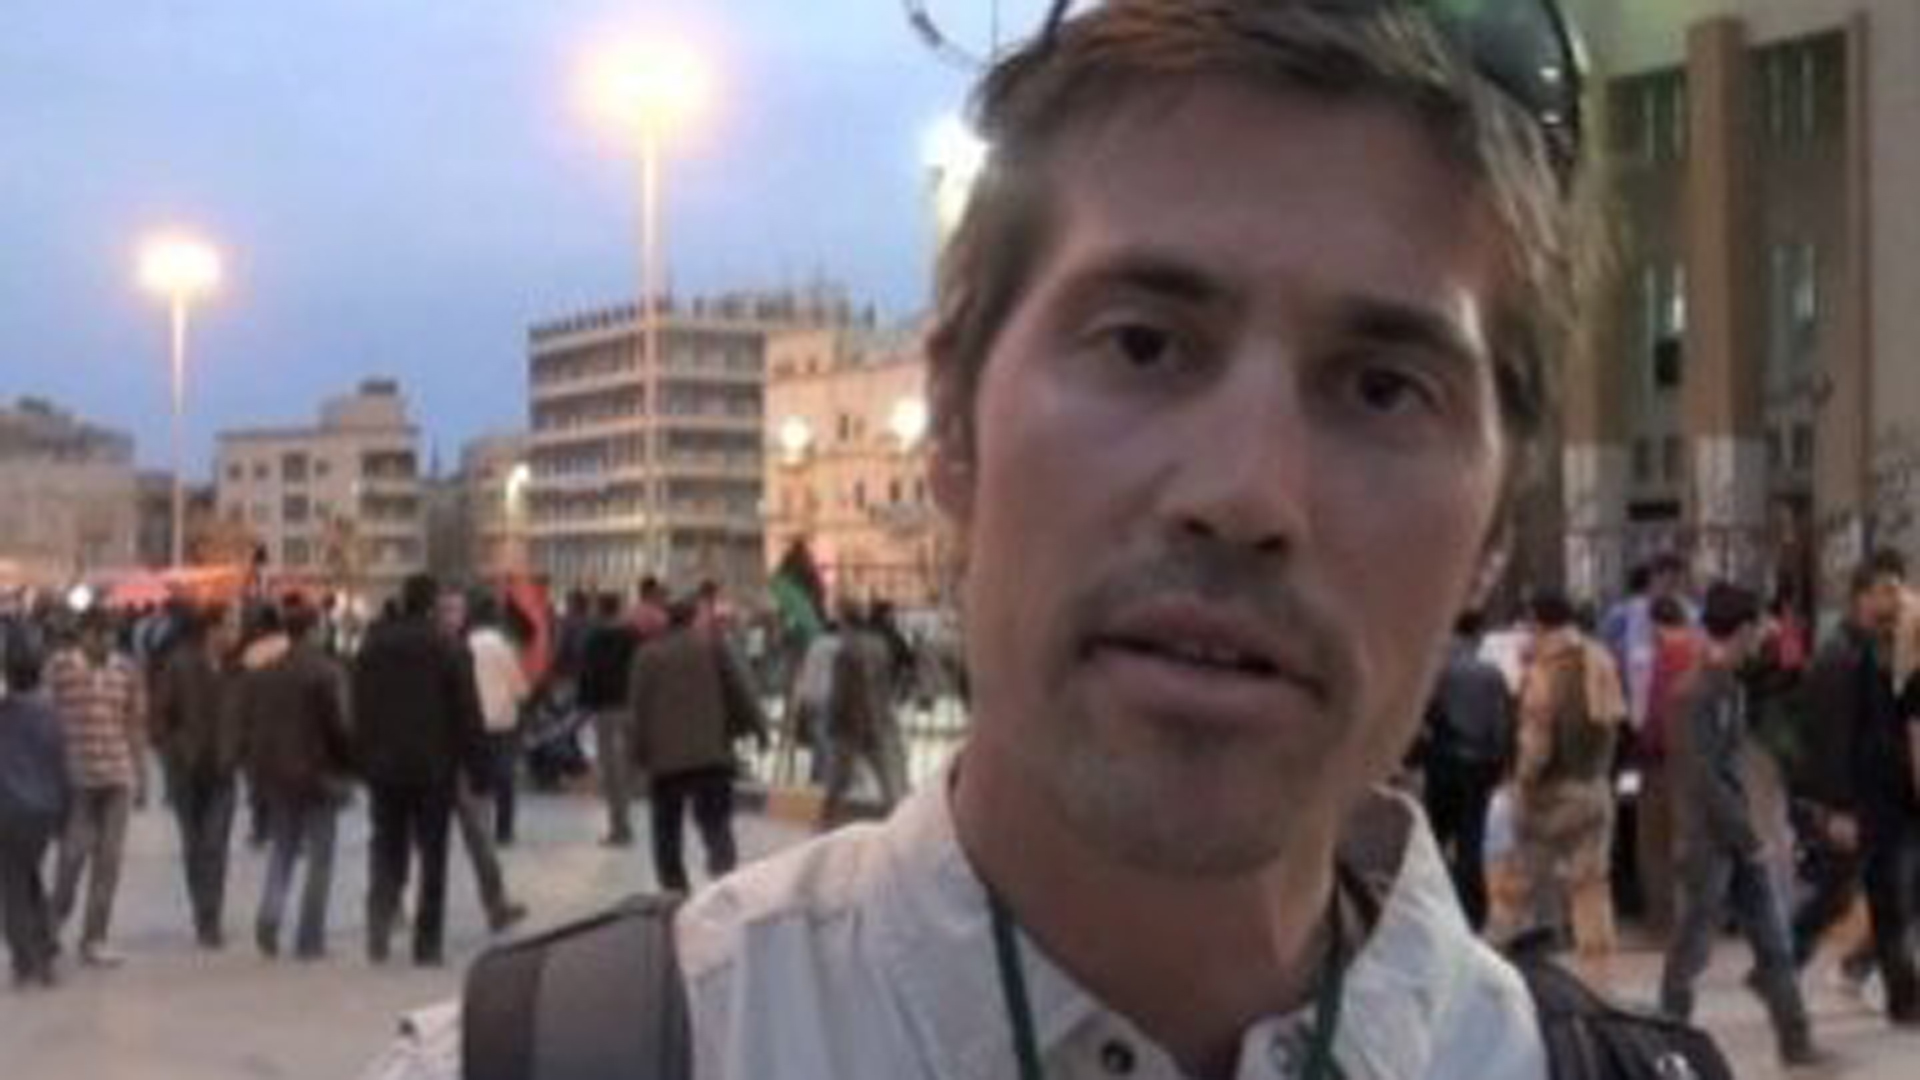 A video released by ISIS showed the beheading of American journalist James Foley, who disappeared in November 2012, in Syria. (Credit: GlobalPost)